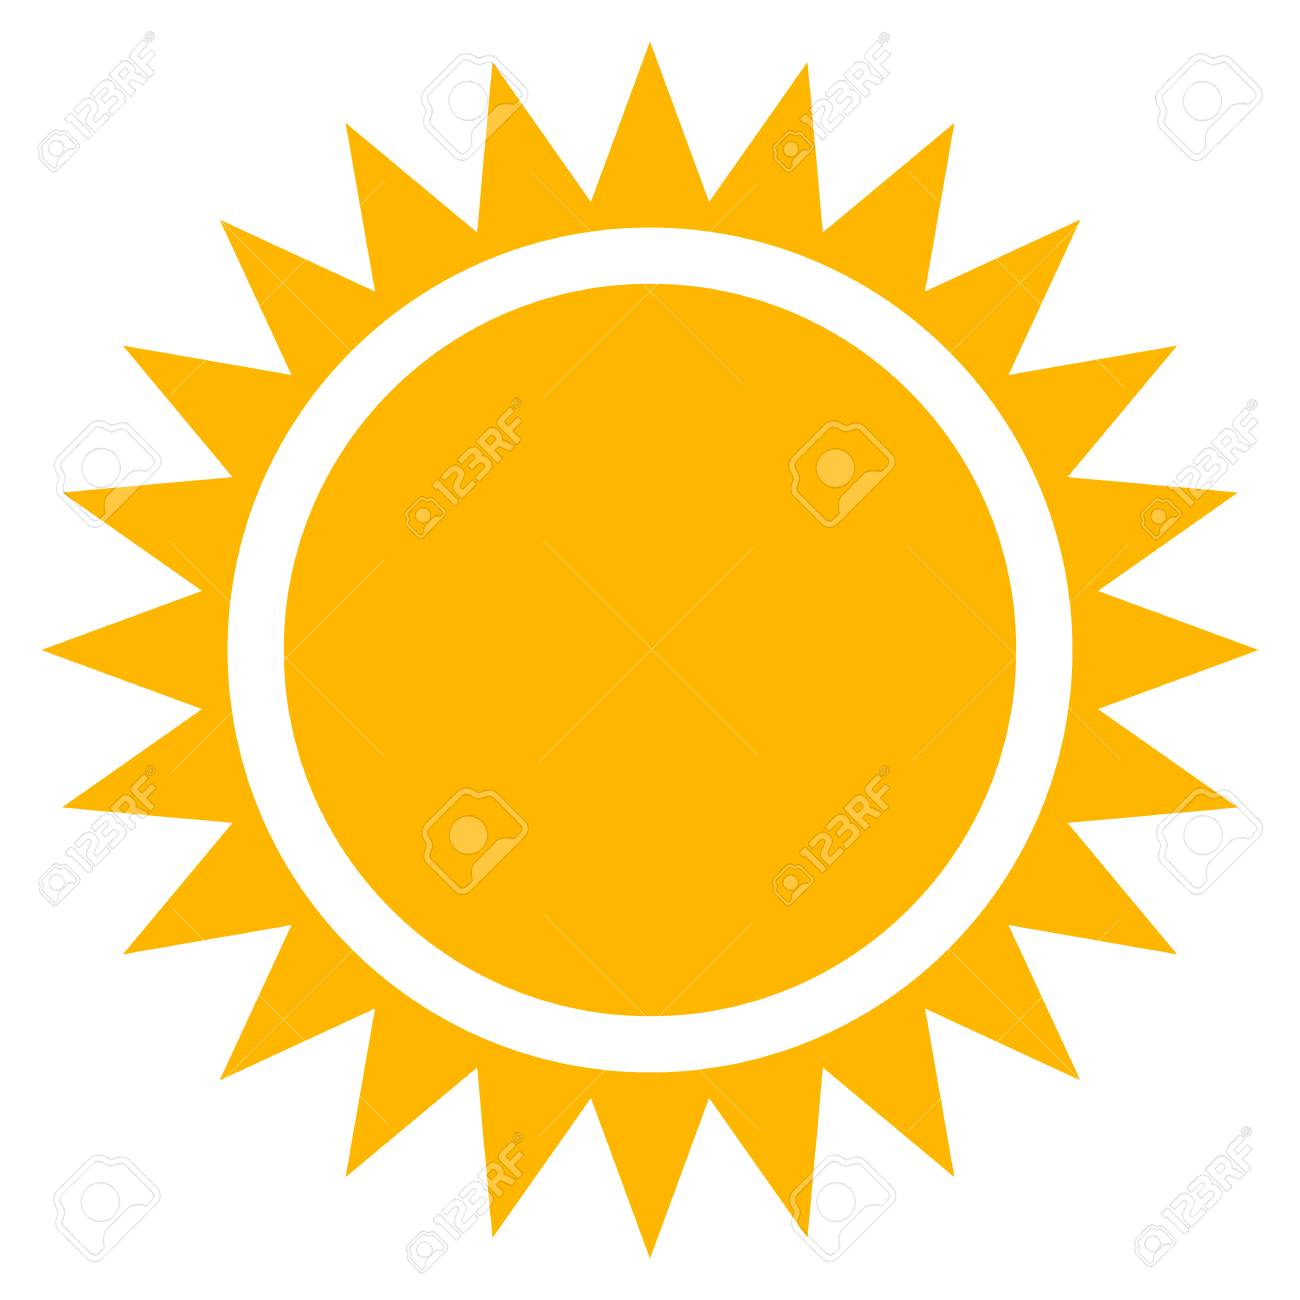 sun clip art flat sun icon with edgy rays royalty free cliparts rh 123rf com cute sun clipart vector House Clip Art Vector